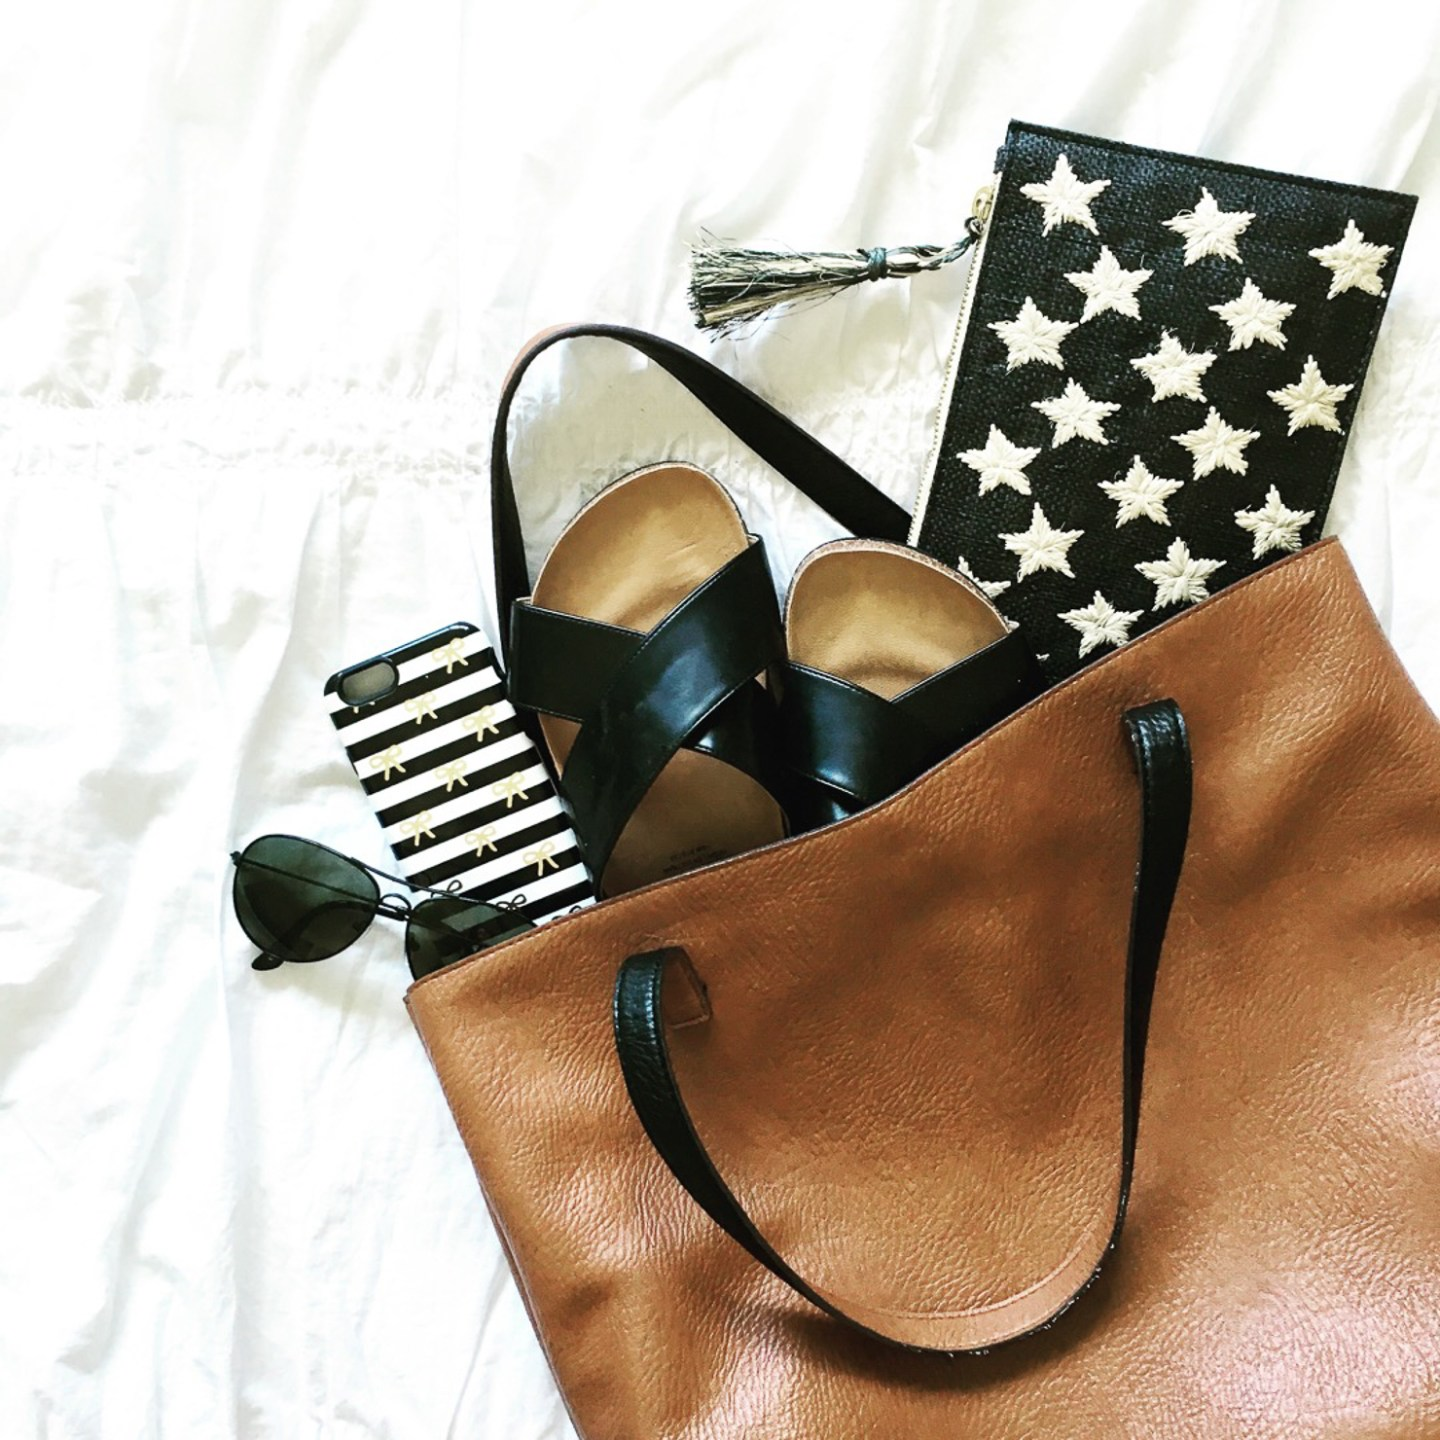 whats-in-my-carry-on-reversible-tote-kayu-star-pouch-black-aviators-criss-cross-slide-sandals